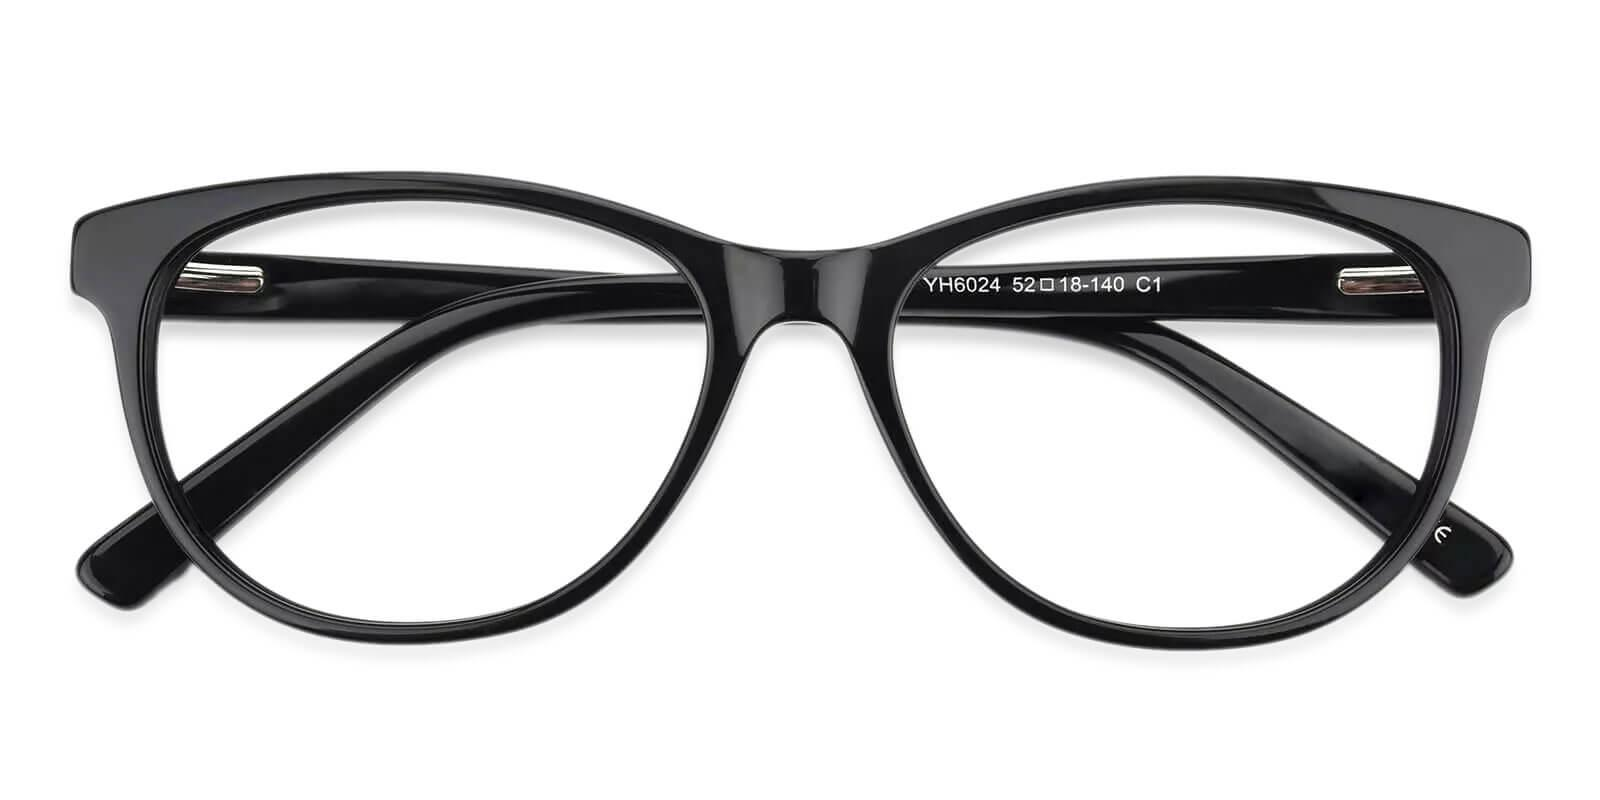 Neptune Black Acetate Eyeglasses , SpringHinges , UniversalBridgeFit Frames from ABBE Glasses